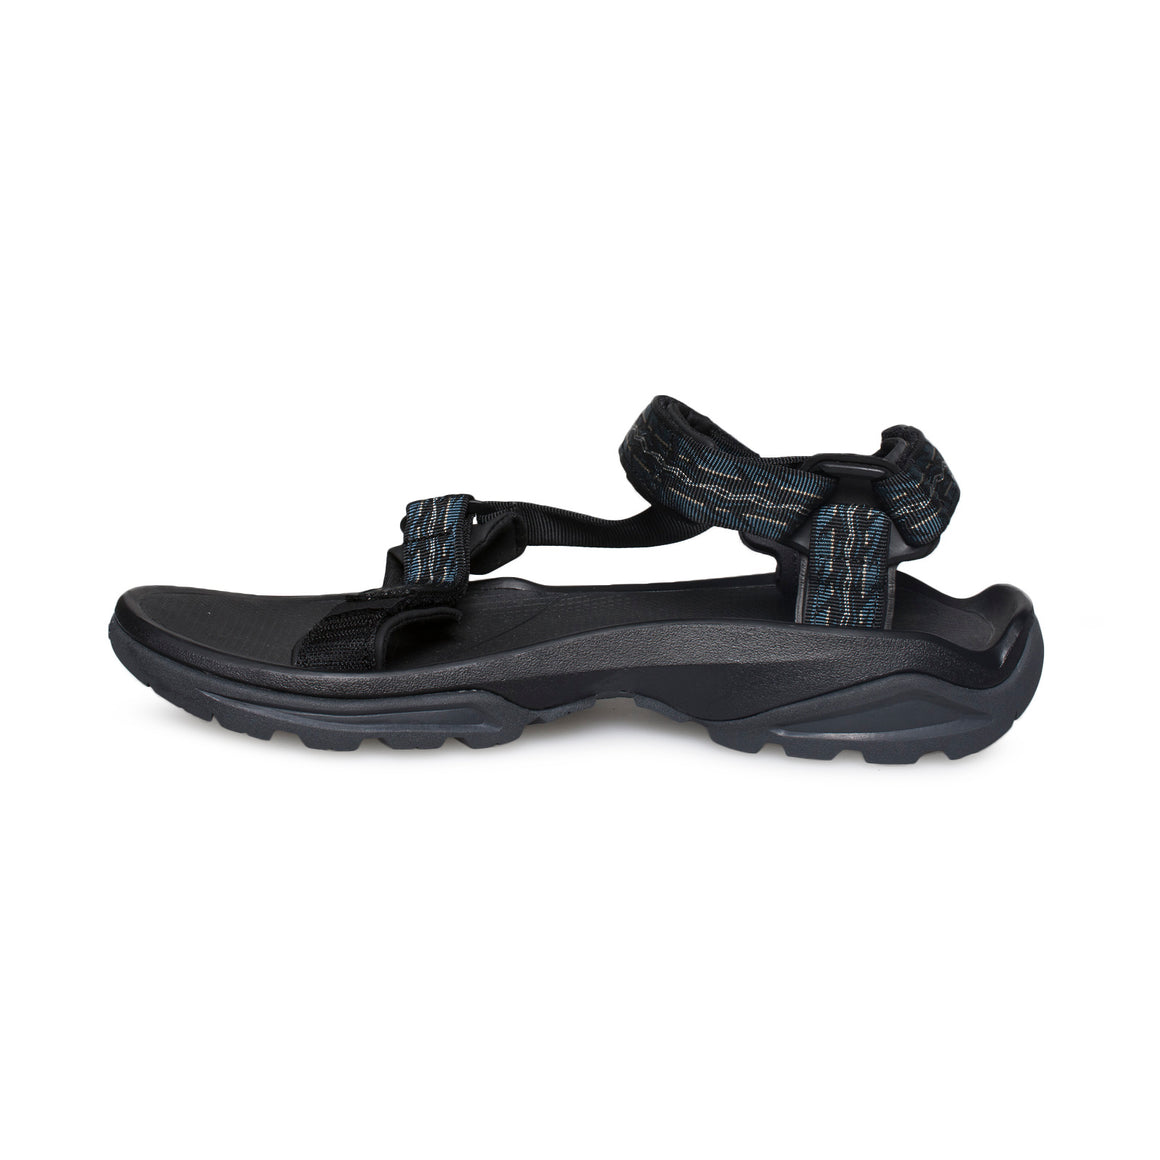 Teva Terra FI 4 Firethread Midnight Sandals - Men's